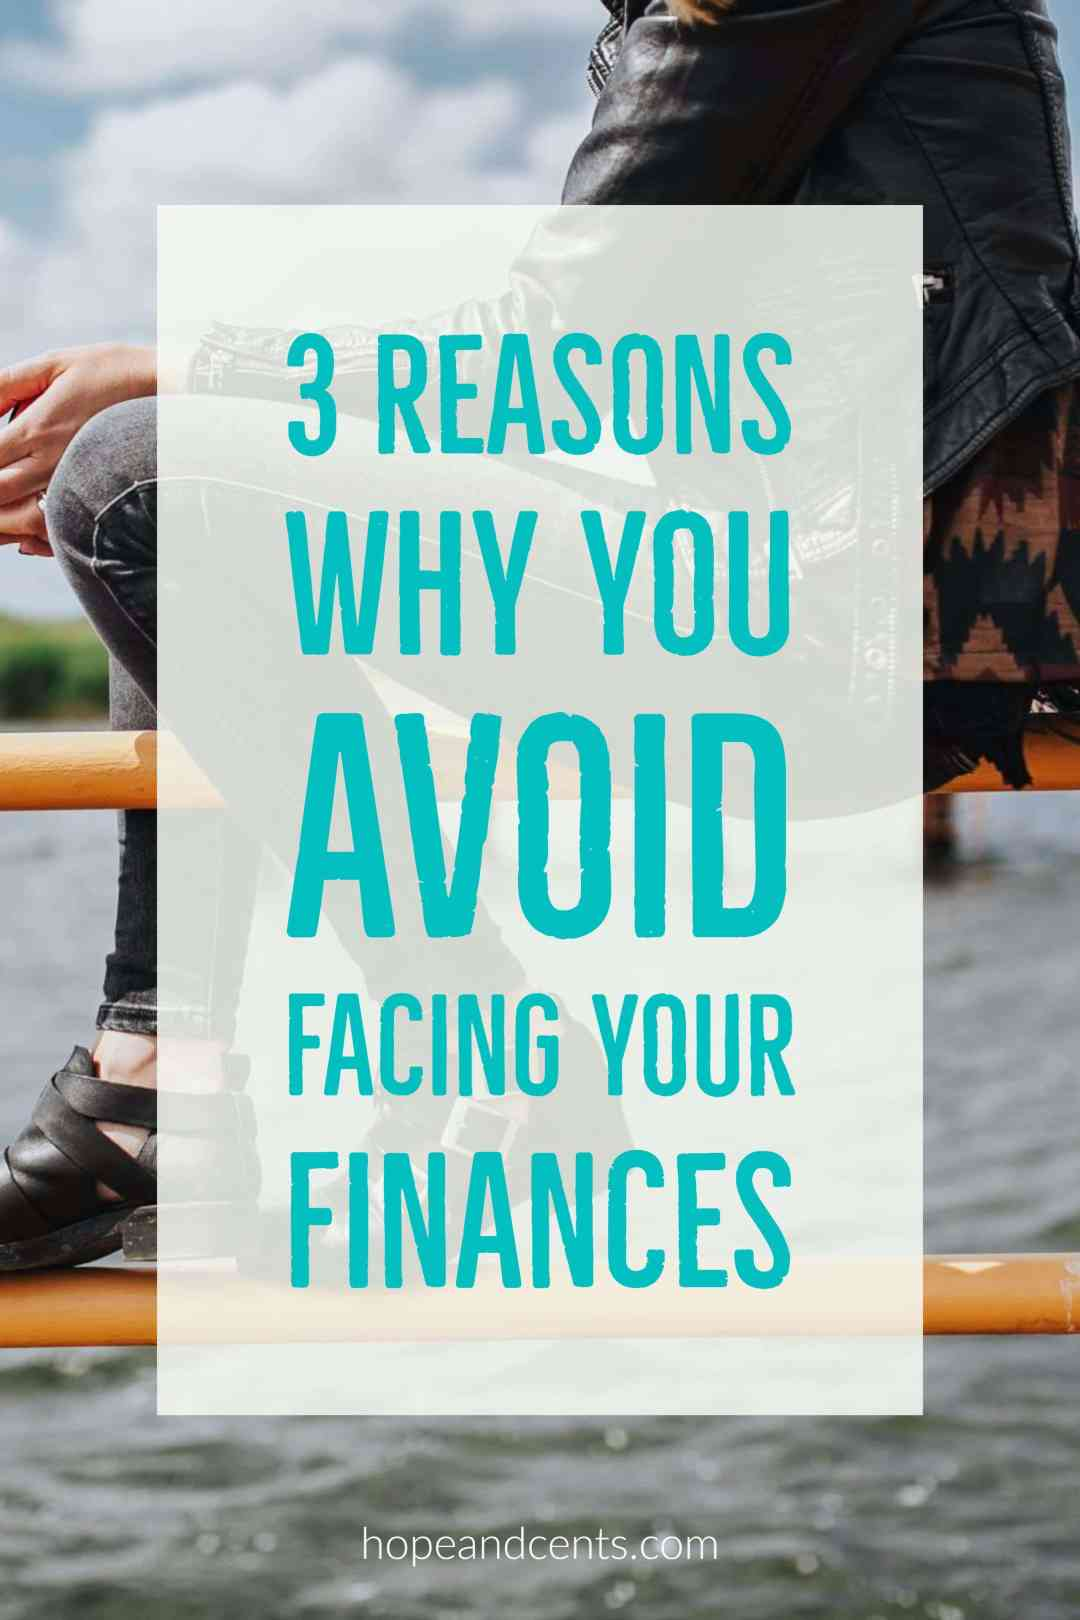 Are you avoiding your financial situation? Ignoring your finances can make them go from bad to worse. Identify the reasons you're avoiding your financial situation and what you can do about it. #money #personalfinance #moneytips #mindset